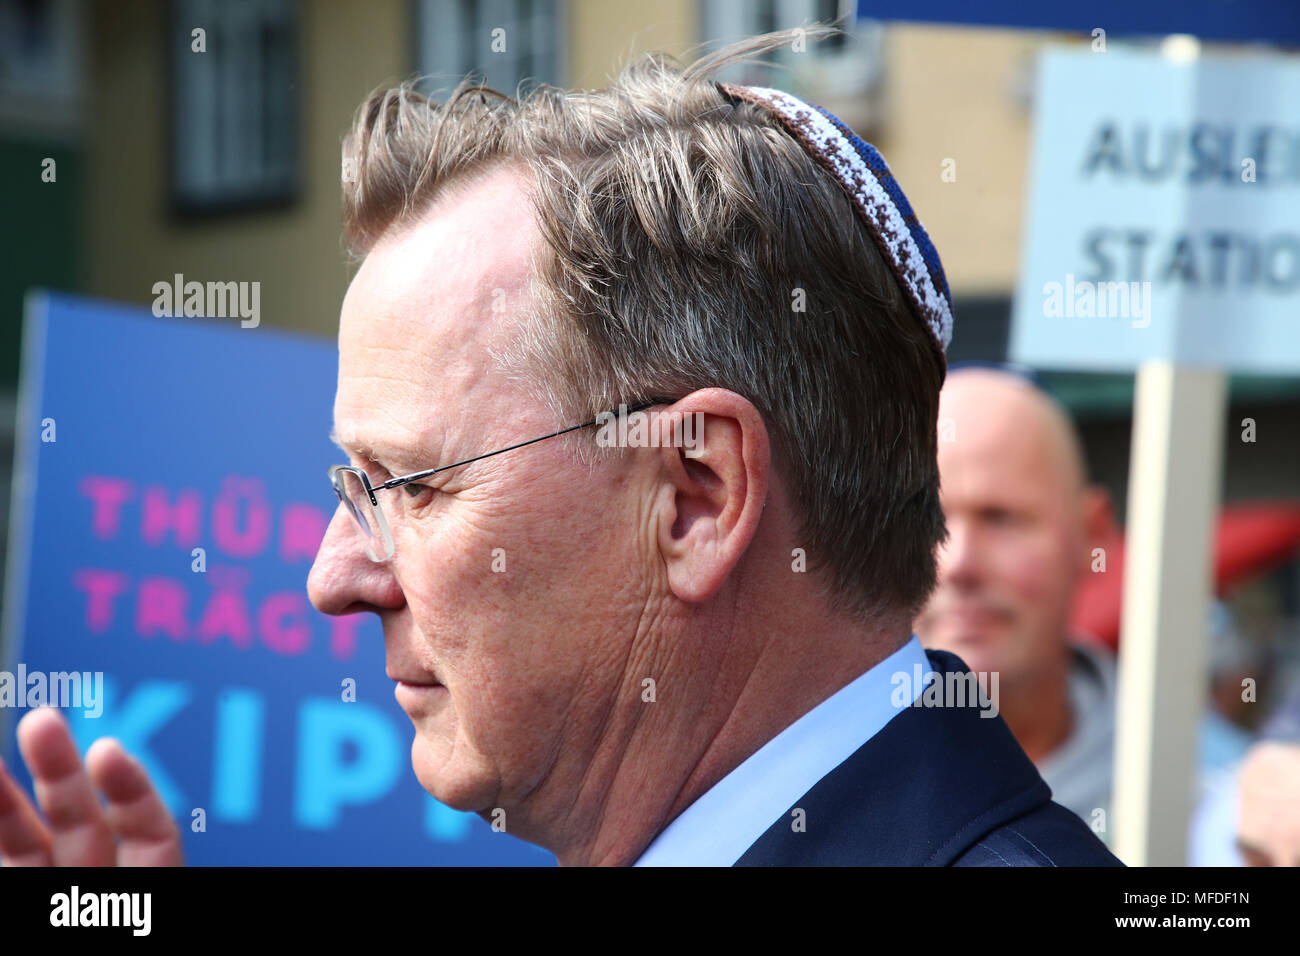 Erfurt, Germany. 25 April Germany, Germany, Erfurt: Premier of Thuringia, Bodo Ramelow of the Left Party, wearing a Kippa in the city centre of Erfurt. Participants in the demonstration in front of the new synagogue in Erfurt take a stance against anti-Semitism and exclusion. Photo: Bodo Schackow/dpa-Zentralbild/dpa Credit: dpa picture alliance/Alamy Live News - Stock Image